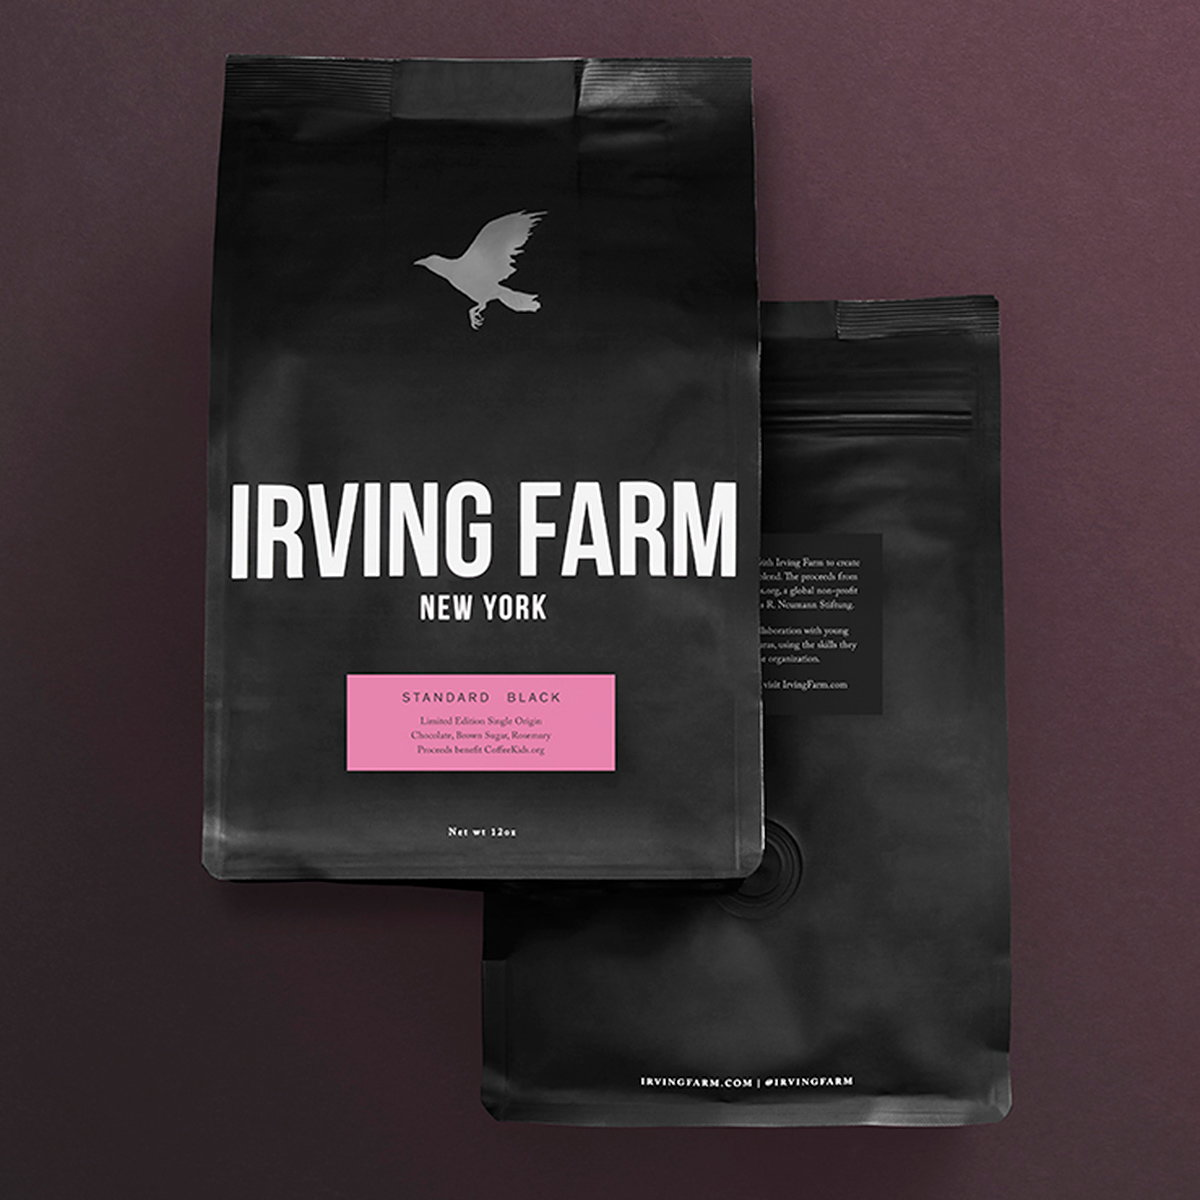 Standard Black and Irving Farm Coffee Create Limited Blend to Benefit Charity